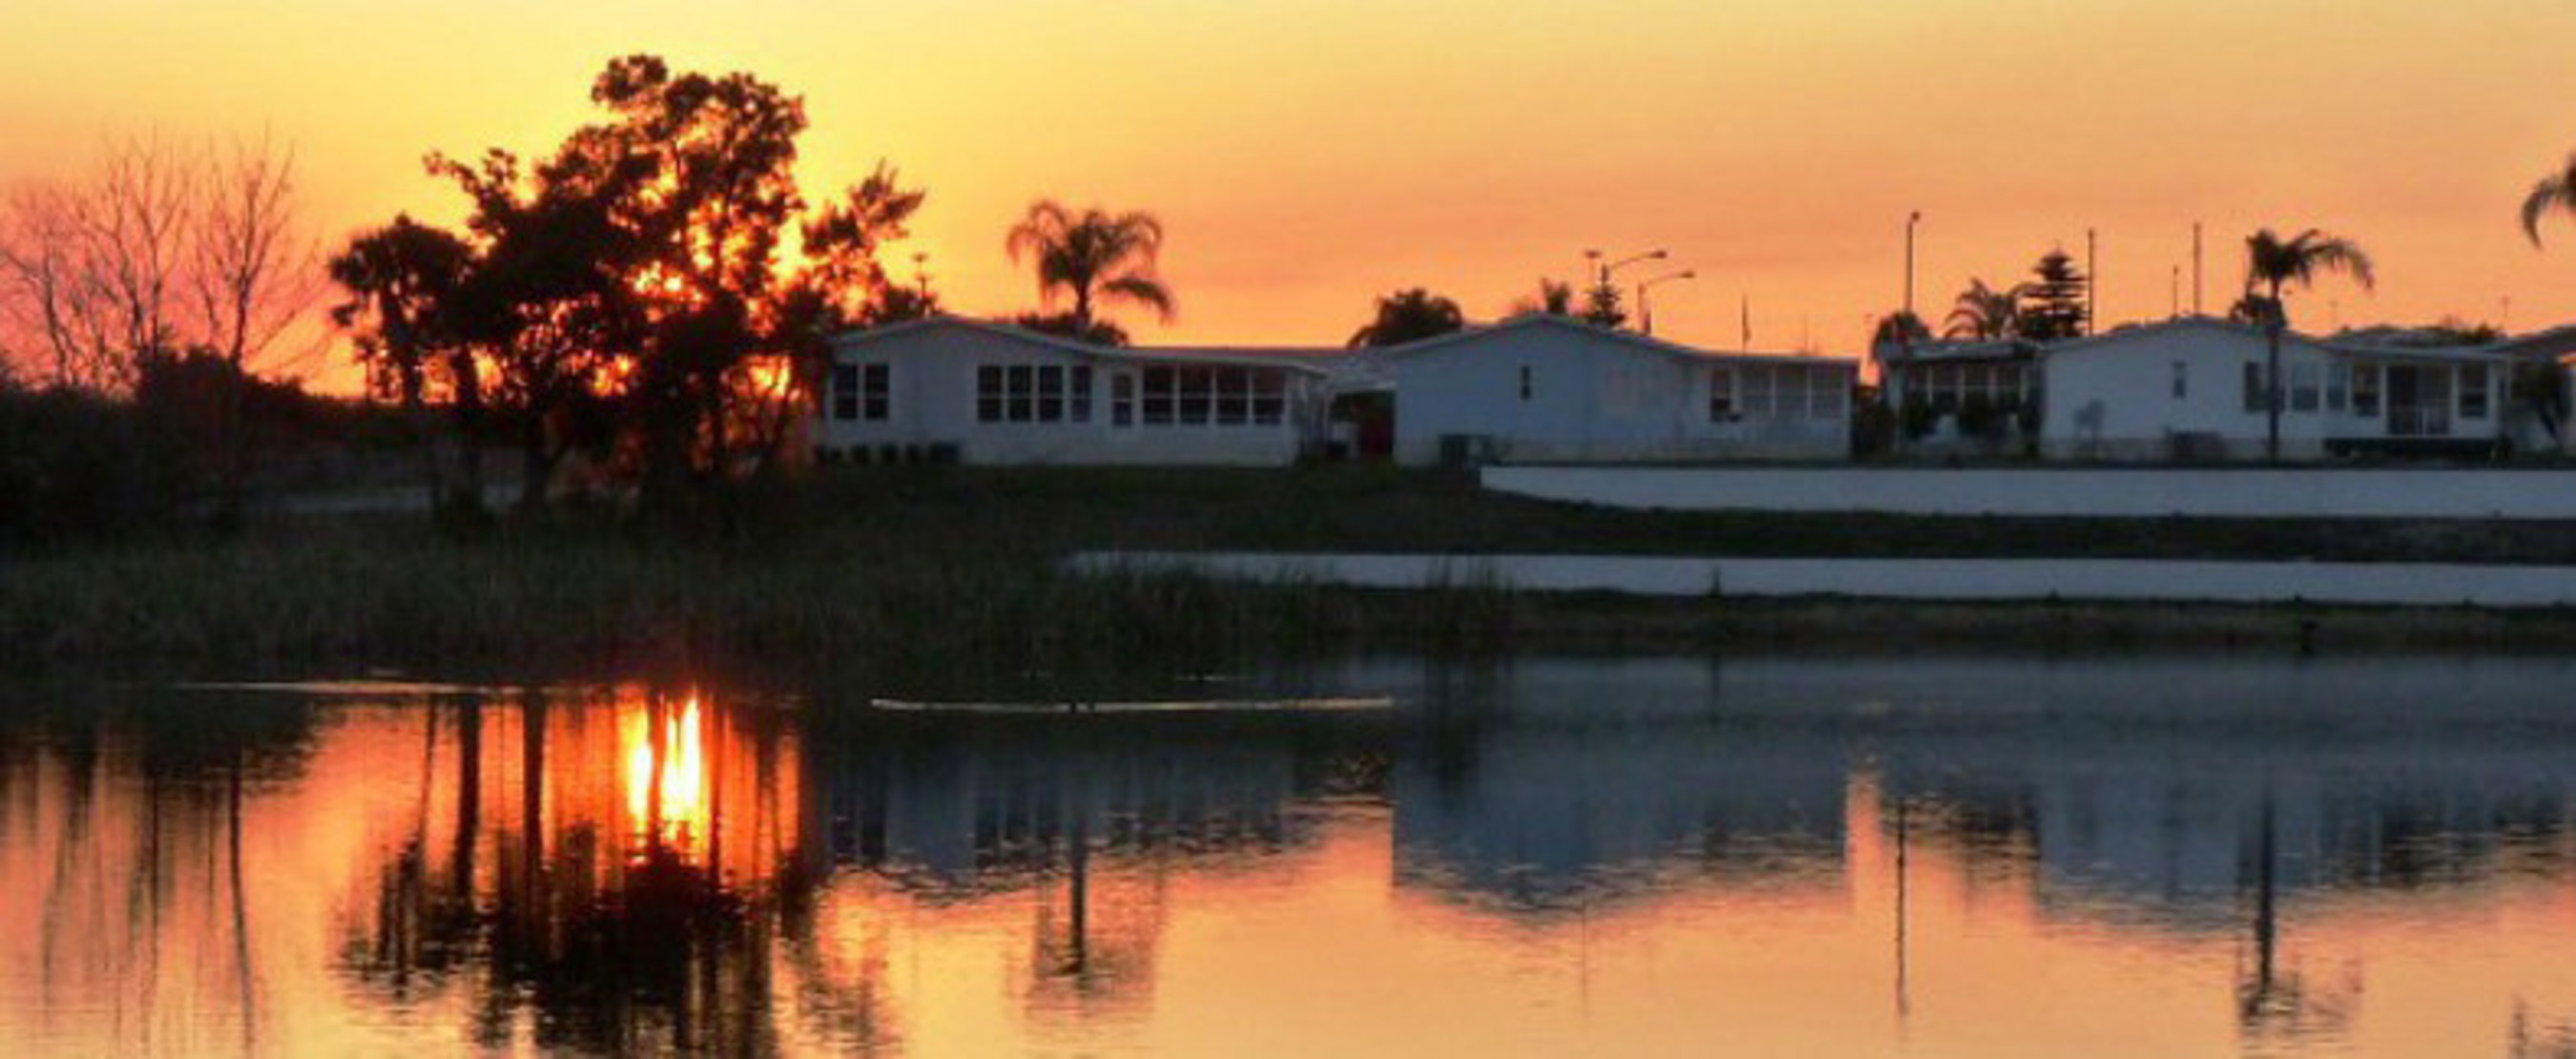 Carefree Communities, the Nation's Fifth Largest Manufactured Home and RV Community Owner, Acquires Central Park MH and RV Communities in Florida